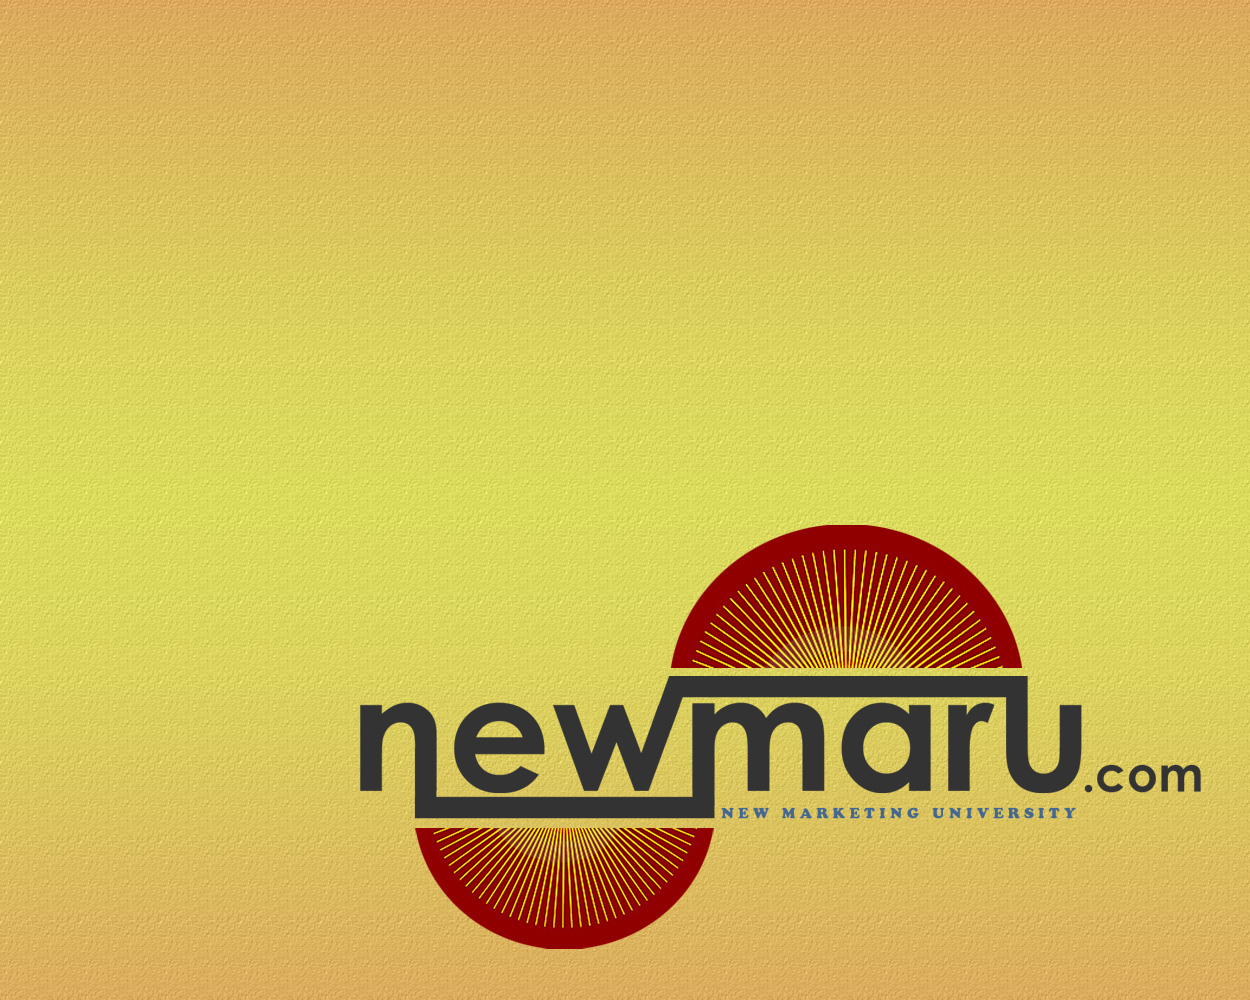 Logo Design by smokegroovechill - Entry No. 3 in the Logo Design Contest NewMarU.com (New Marketing University).